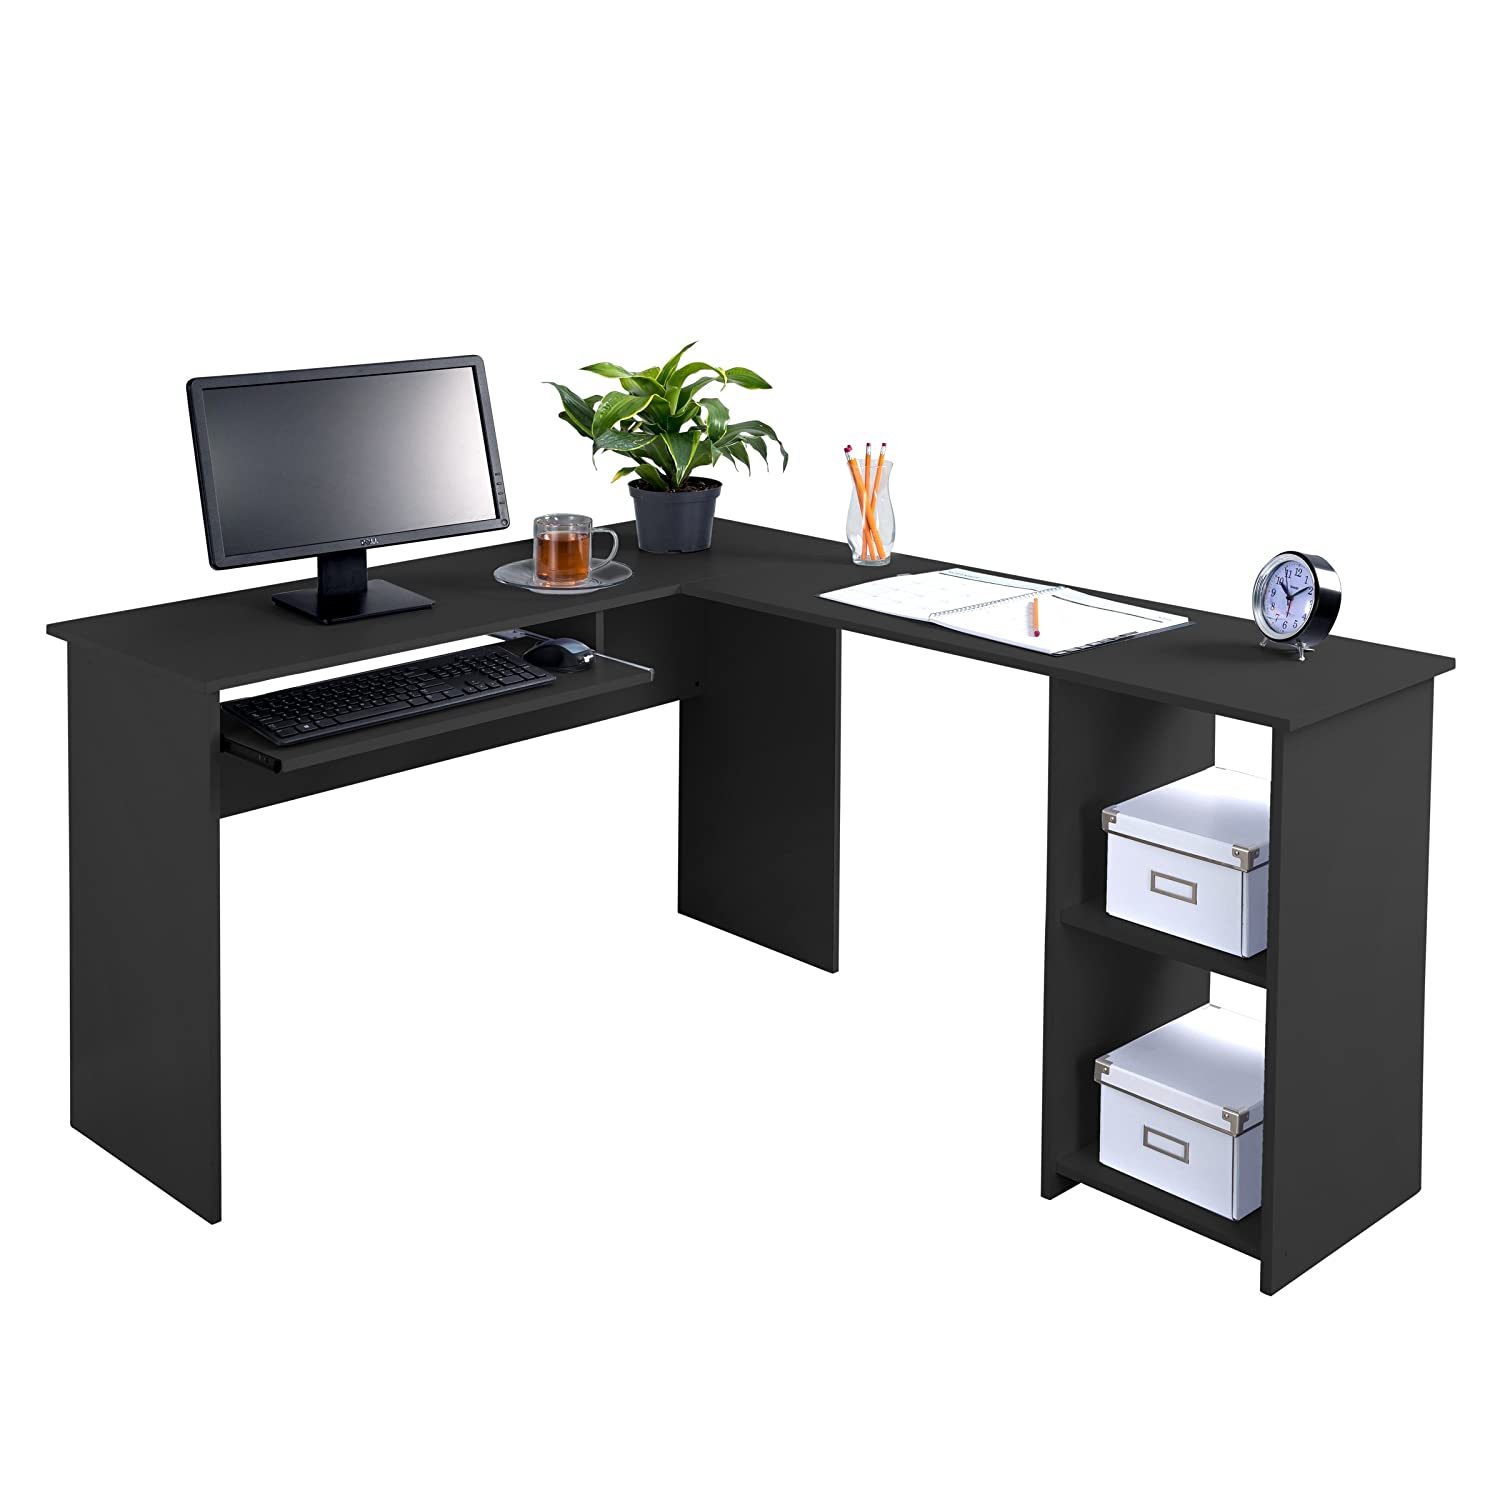 Fineboard FB-LD01-BK L-Shaped Office Corner Desk 2 Side Shelves, Black JNS TRADING & IMPORT INC.